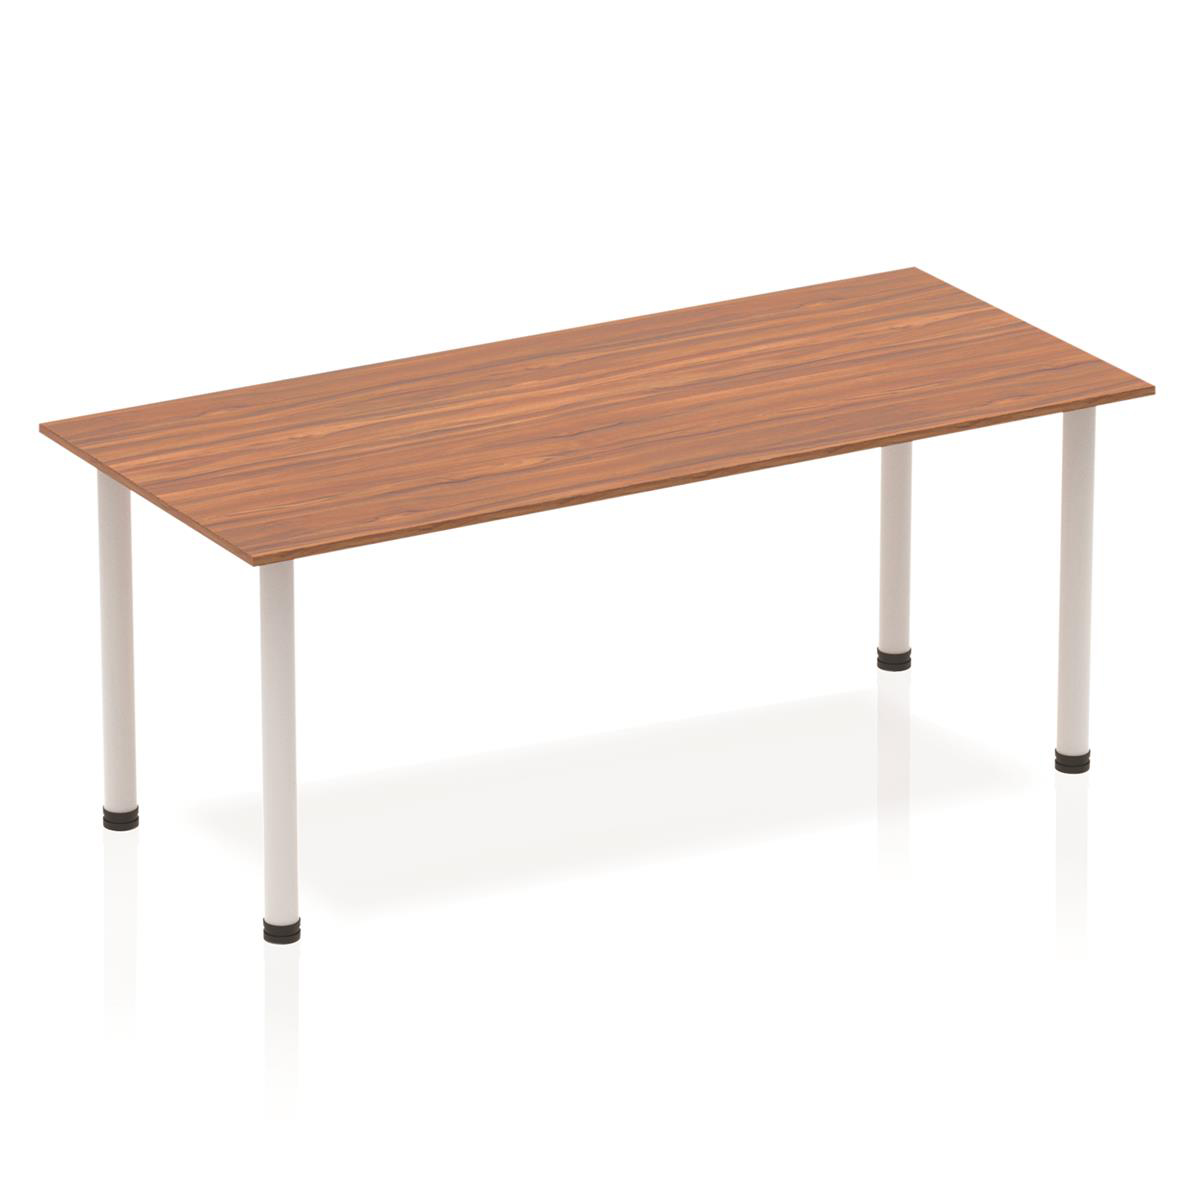 Sonix Rectangular Silver Post Leg Table 1800x800mm Walnut Ref BF00187